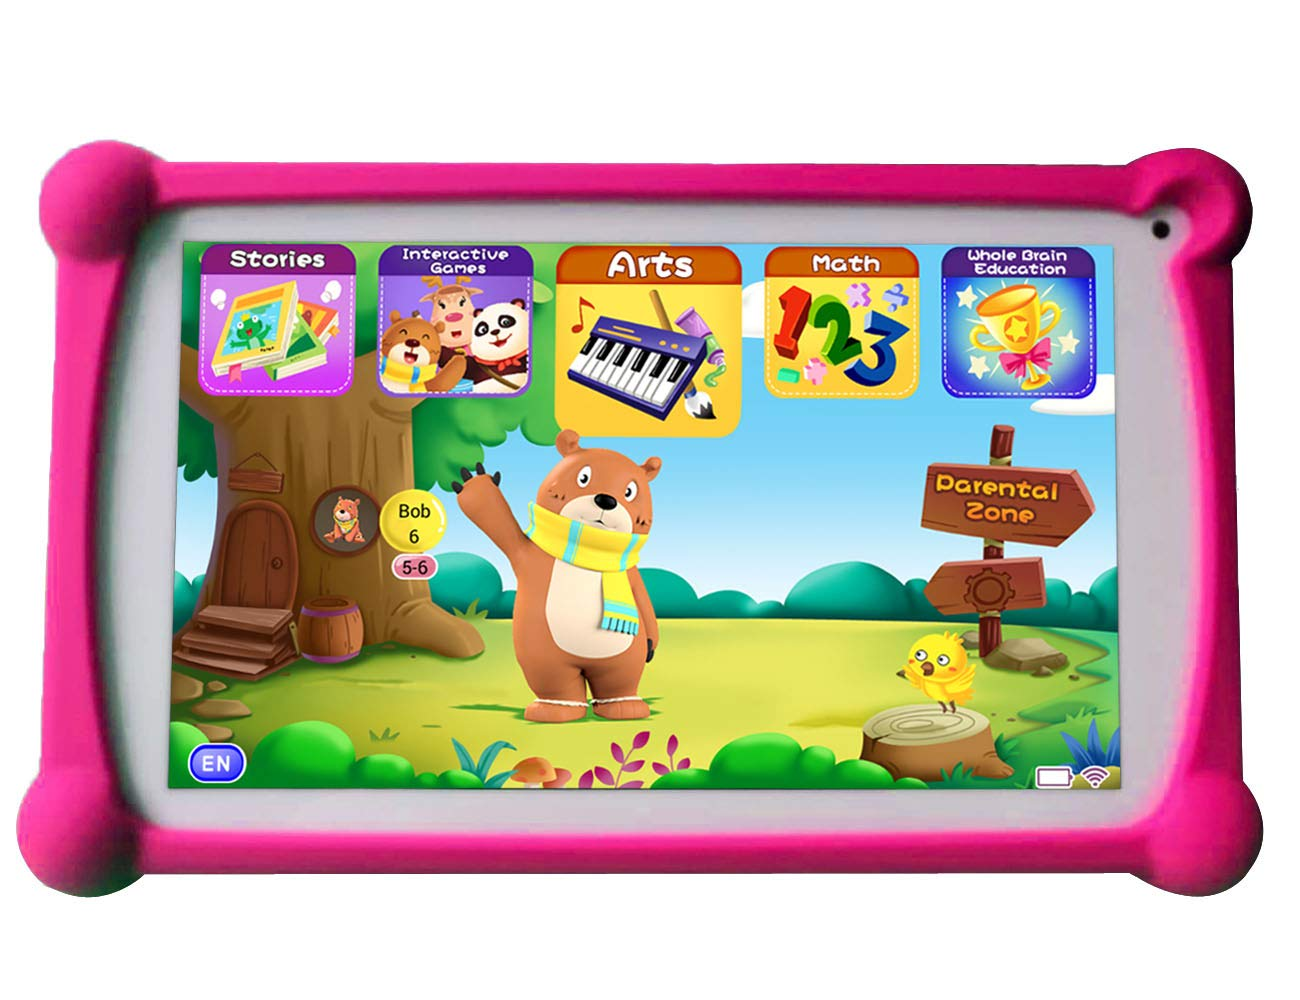 Kids Tablet, B.B.PAW 7 inch 1G+8G Android Tablet with Additional 120+ English Preloaded Apps-Candy Pink by B.B.PAW  (Image #1)